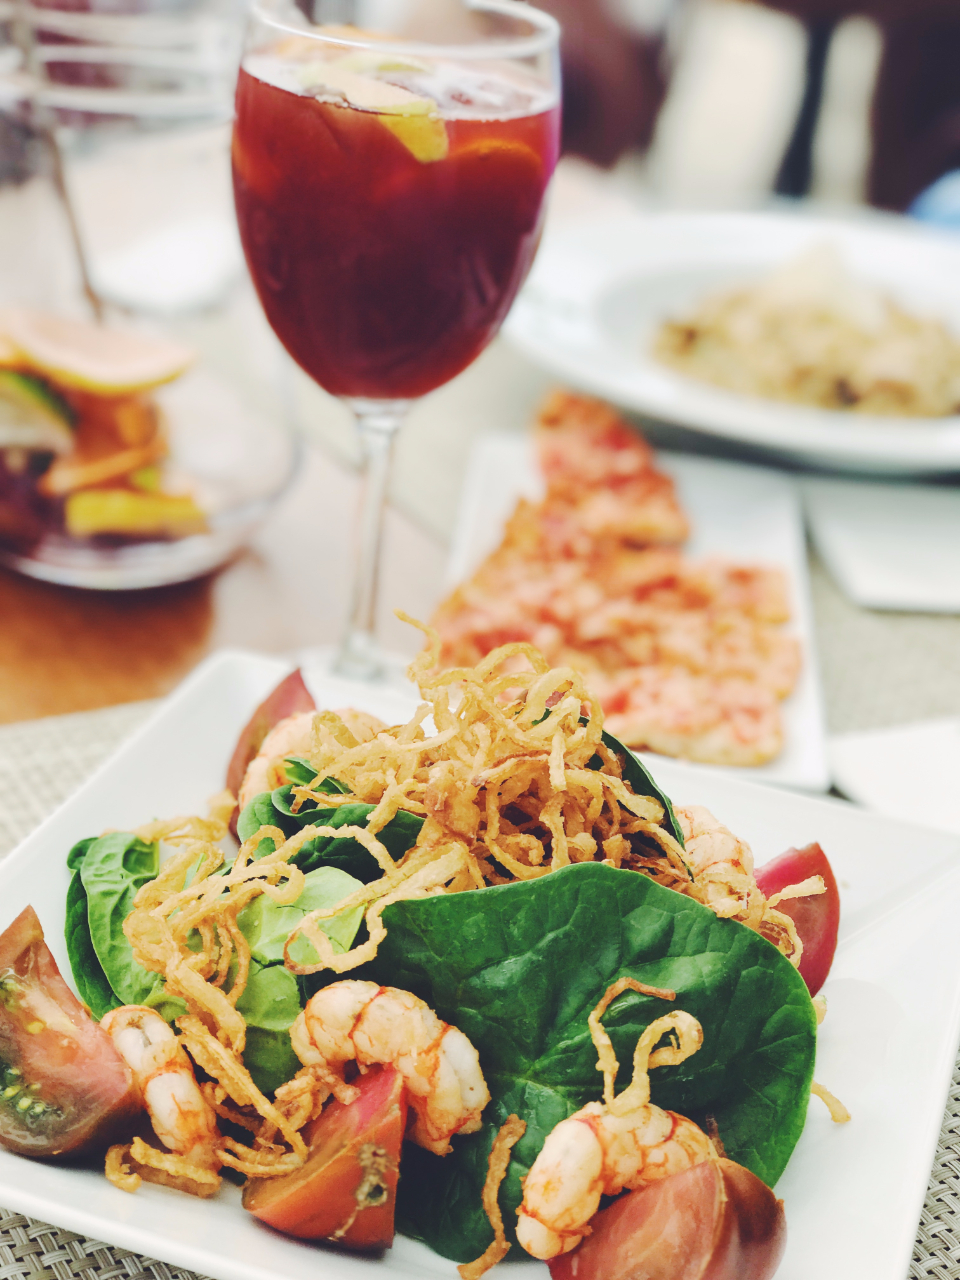 food sangria wine summer seafood fried crunchy salad leaves spinach restaurant beverage drink plate table